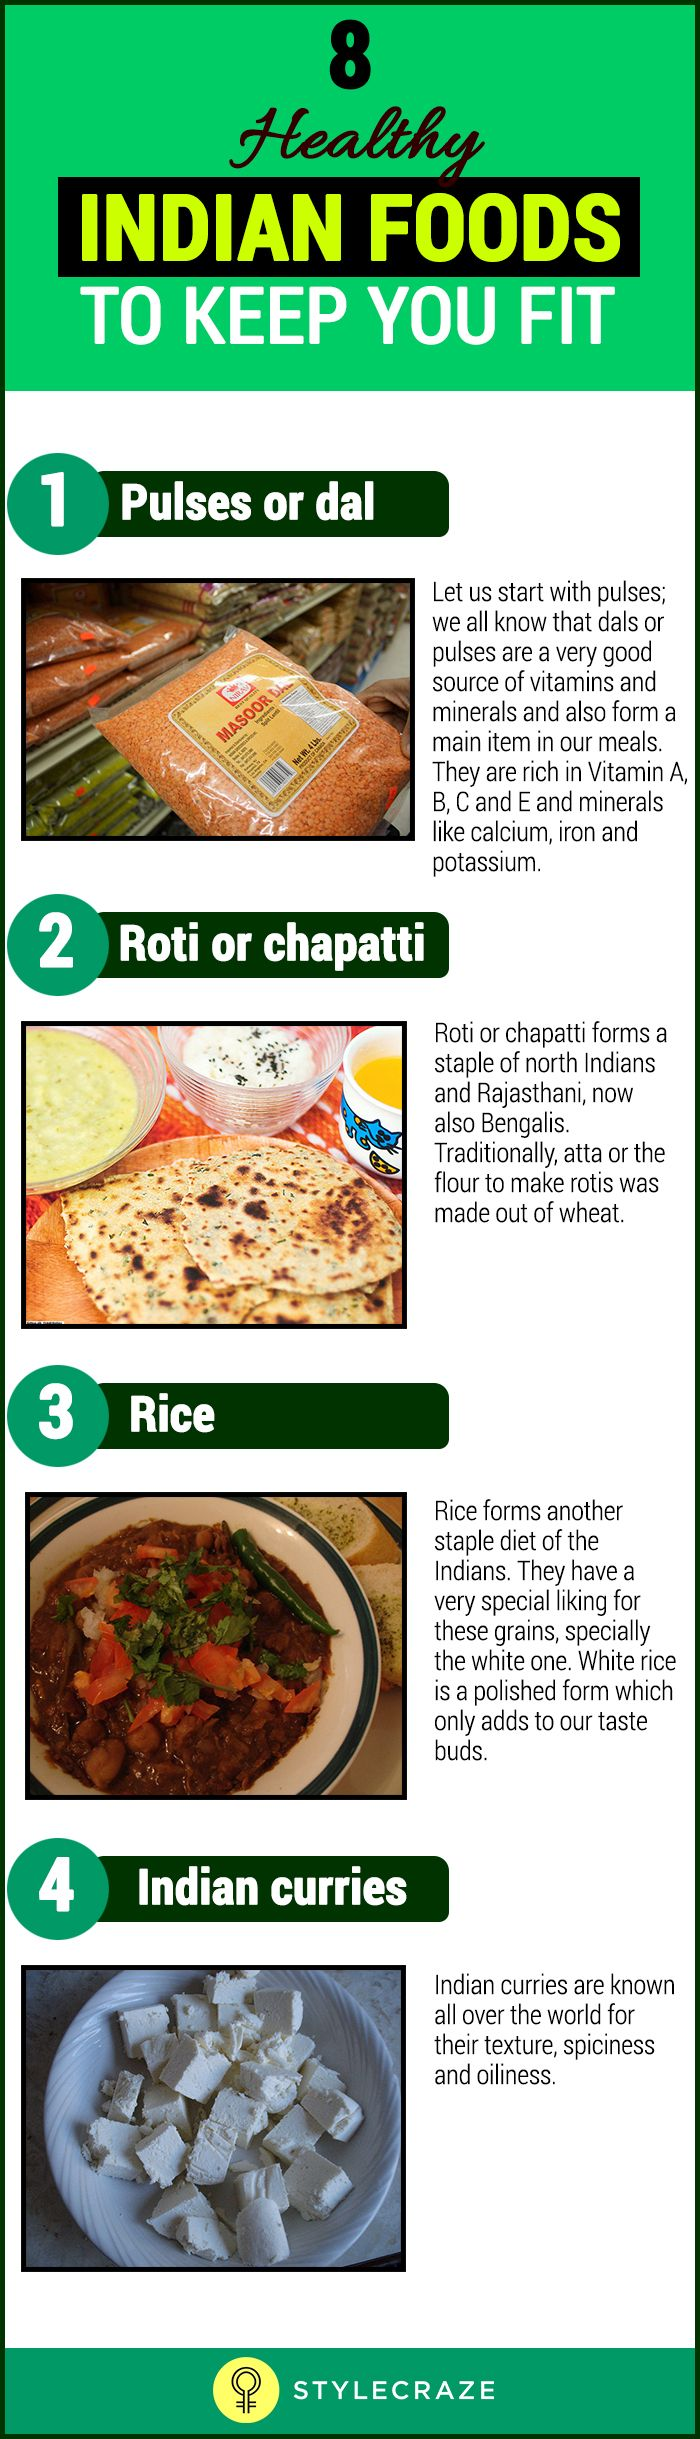 8 Healthy Indian Foods To Keep You Fit advise